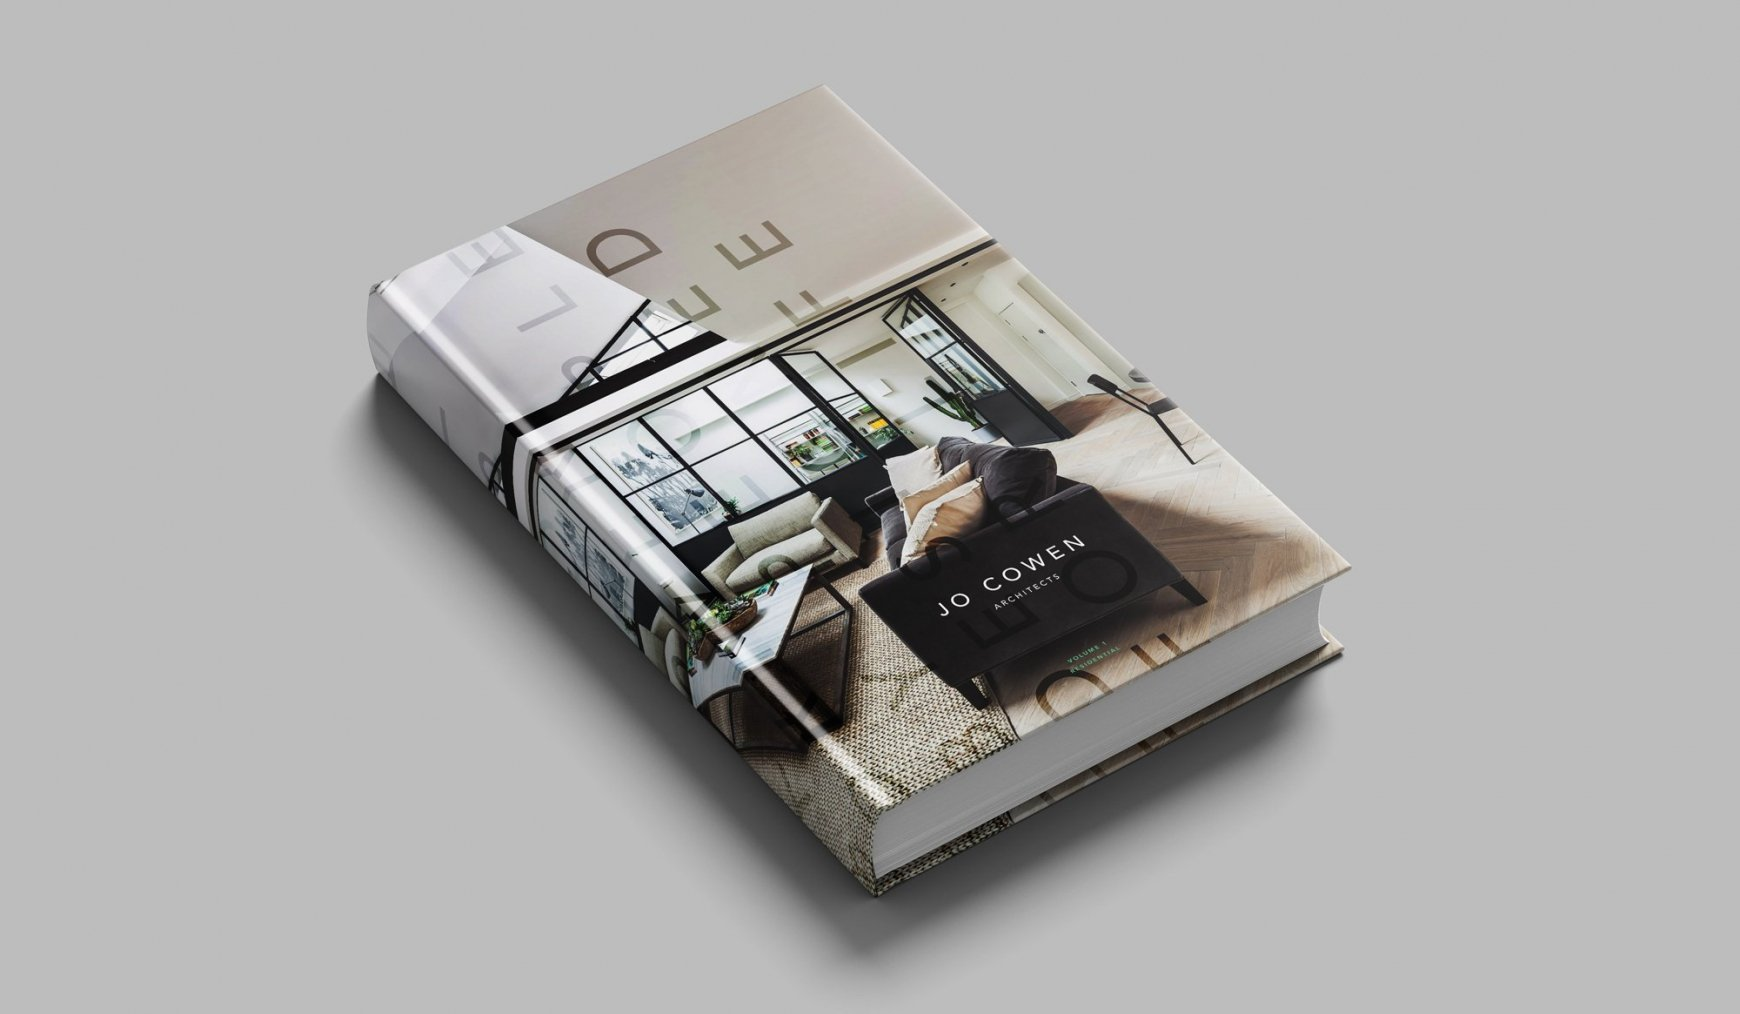 Concept for Jo Cowen Architects print work and book